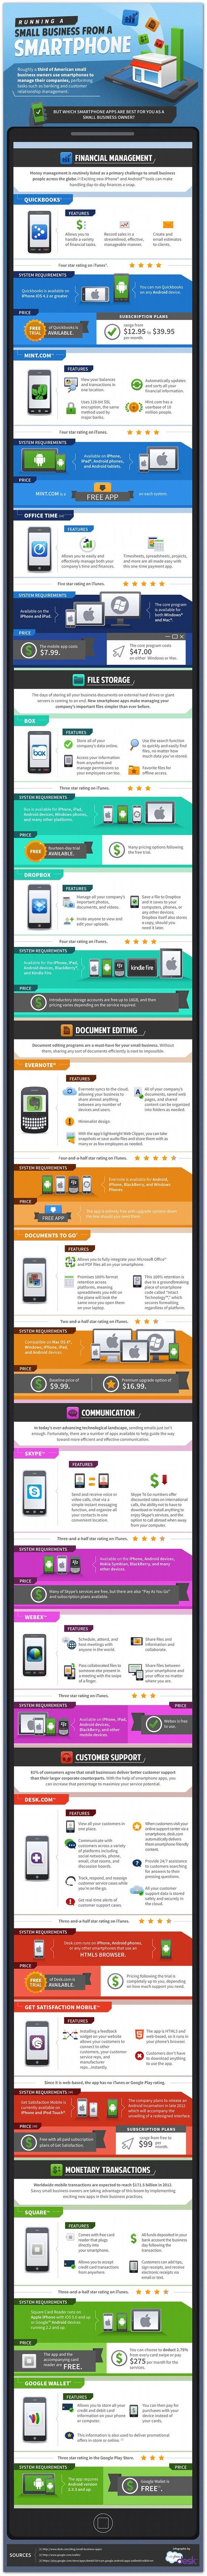 How to Run Your Law Firm From Your Smartphone [Infographic]